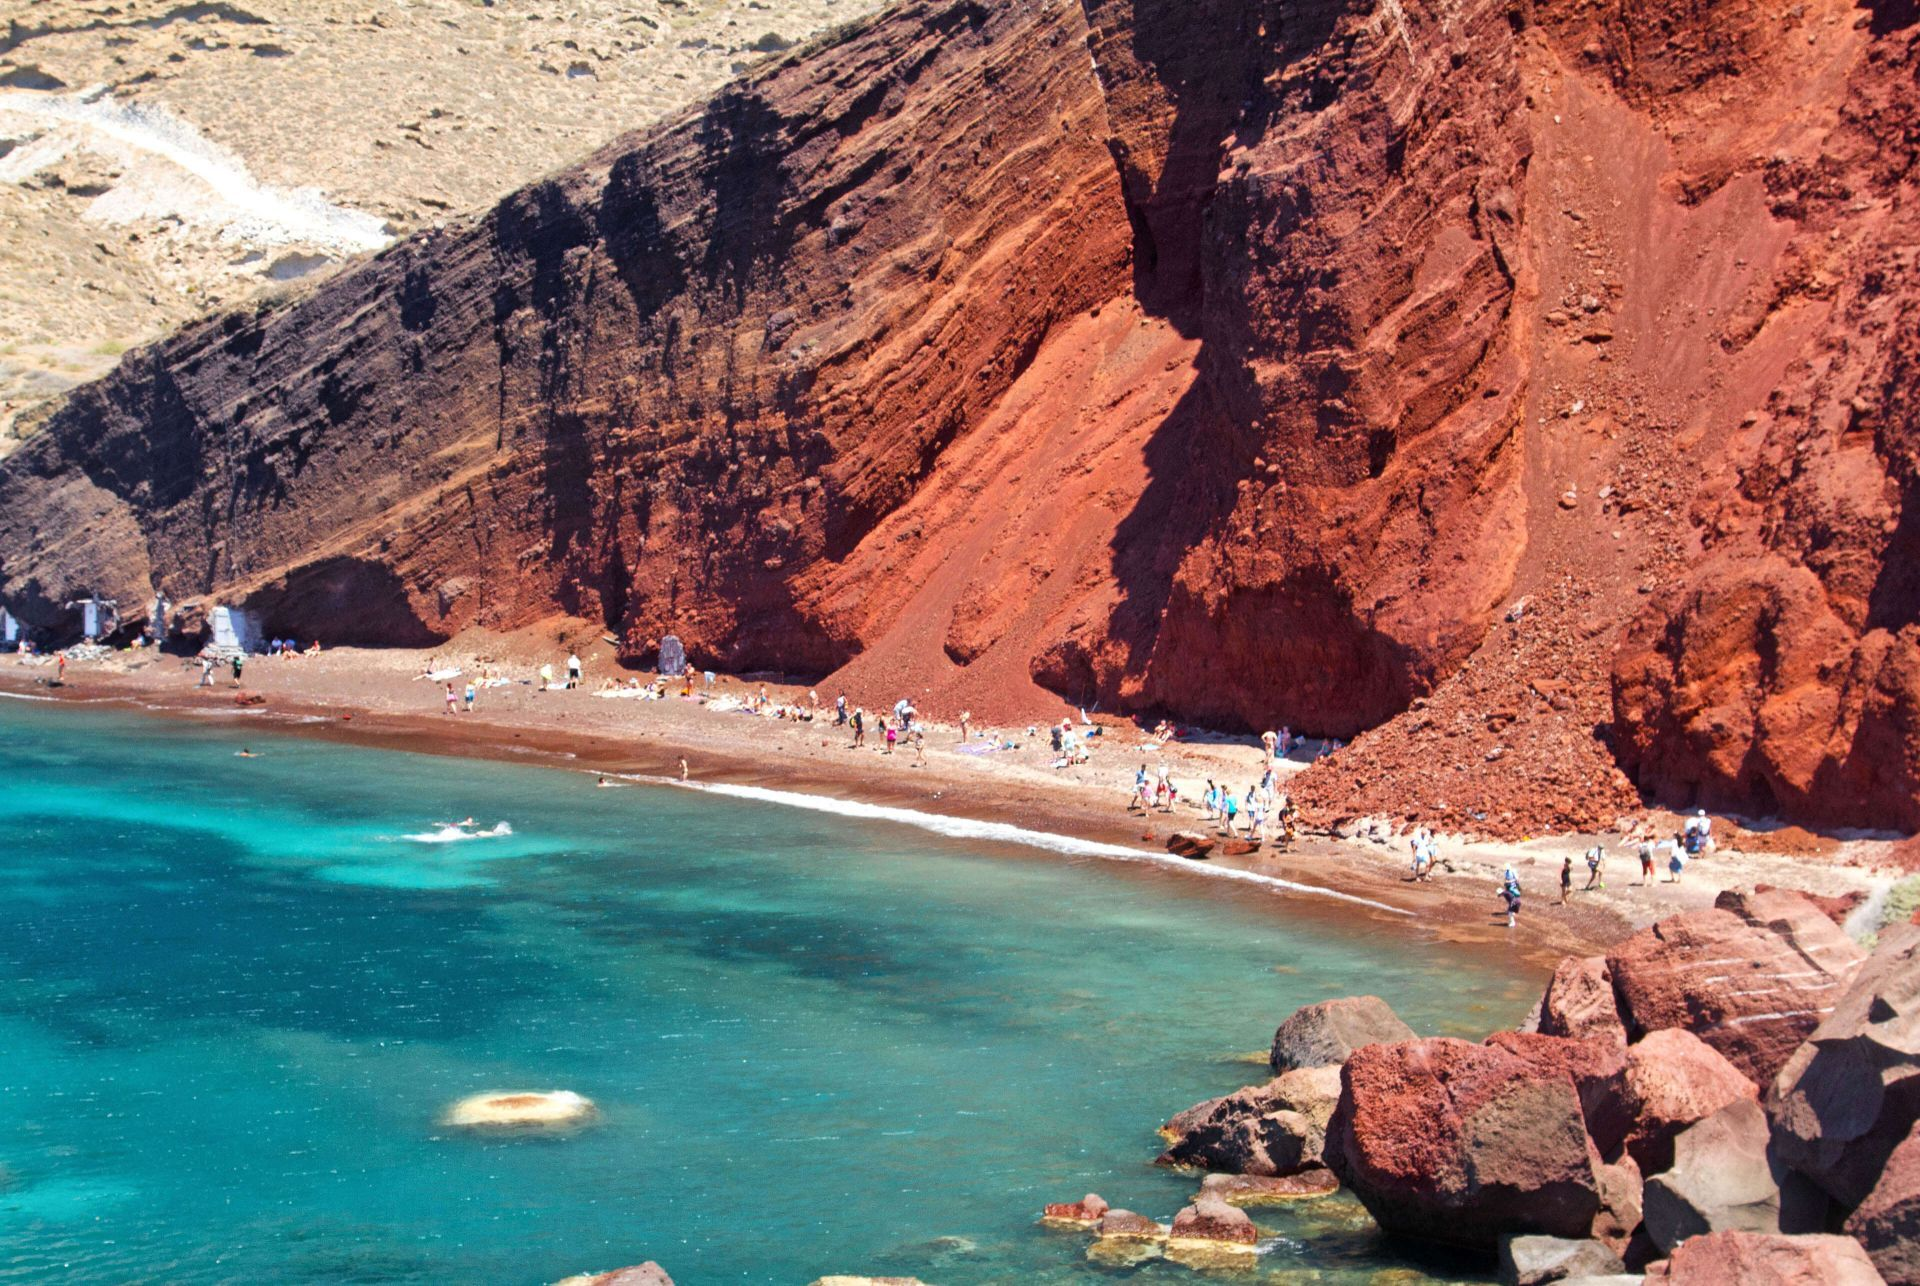 Santorini Greece: The Red Beach